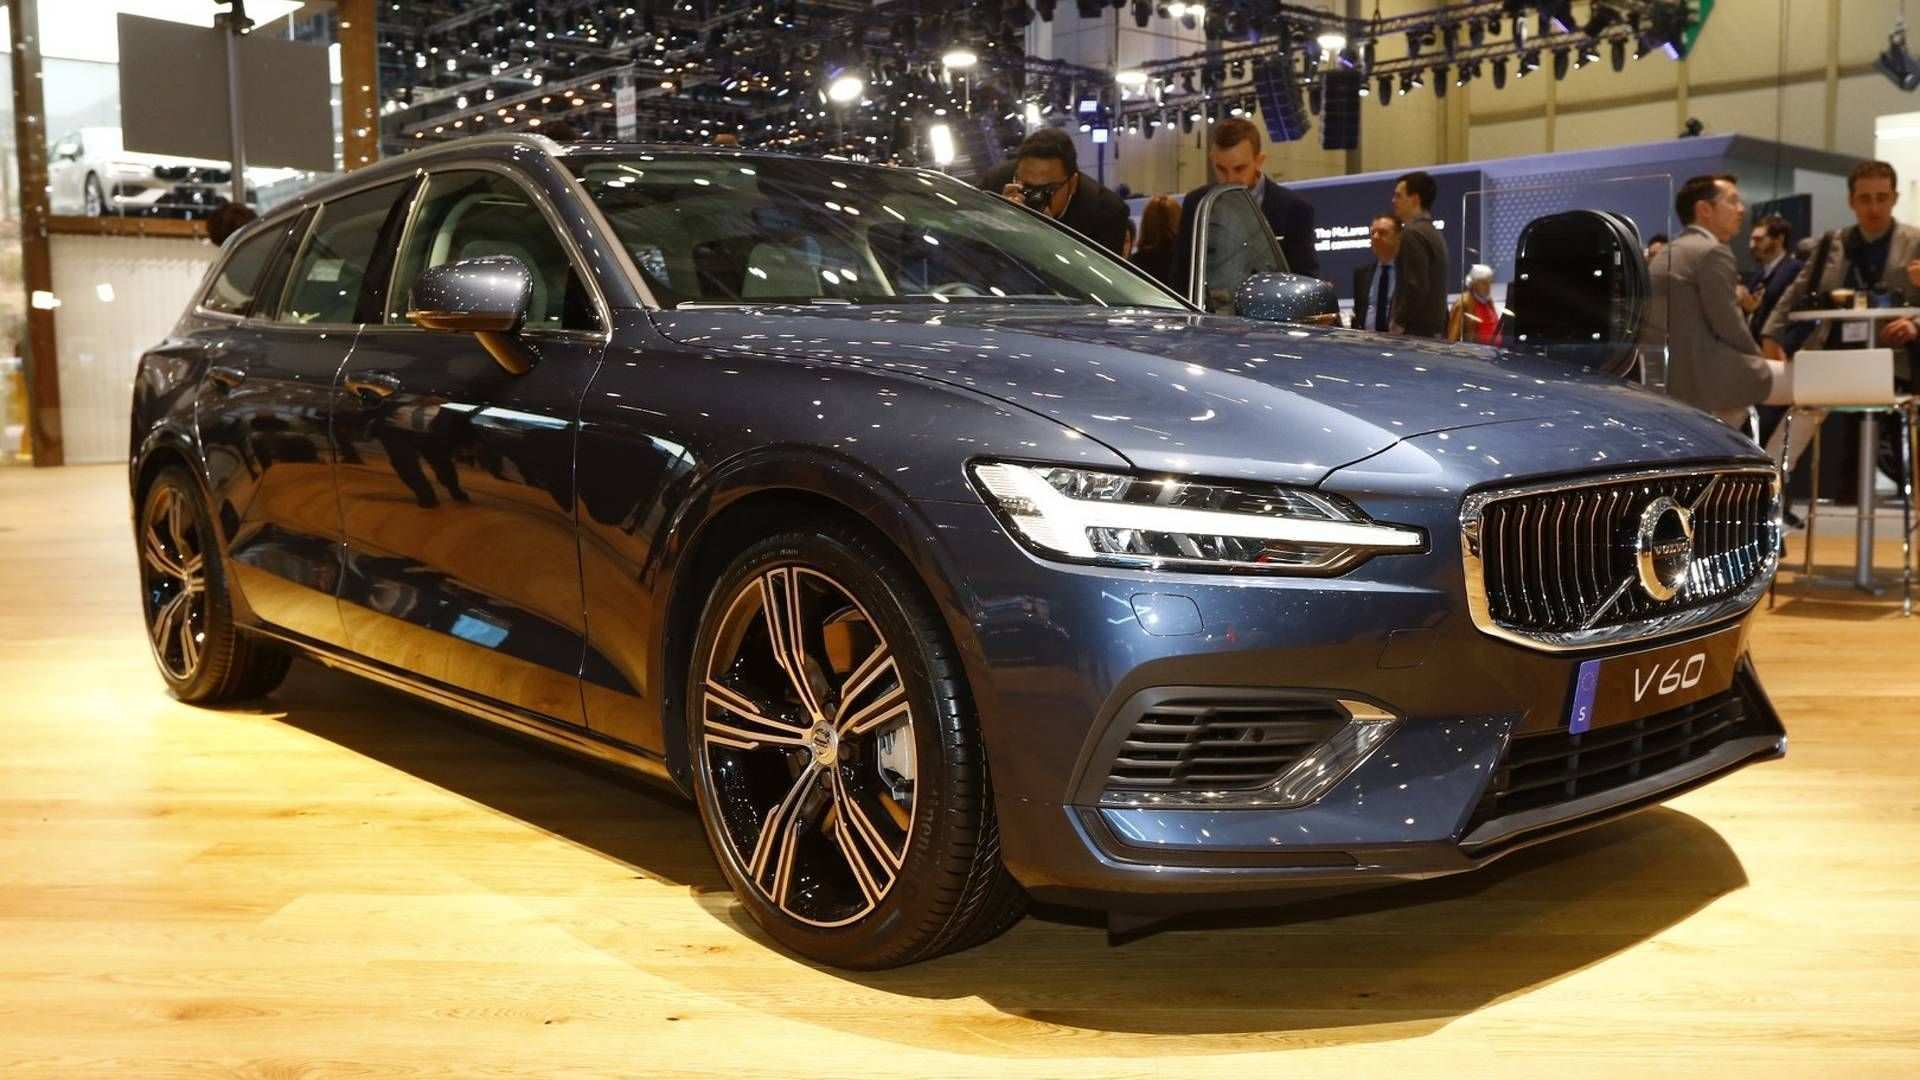 95 All New Volvo Car Open 2019 Concept And Review